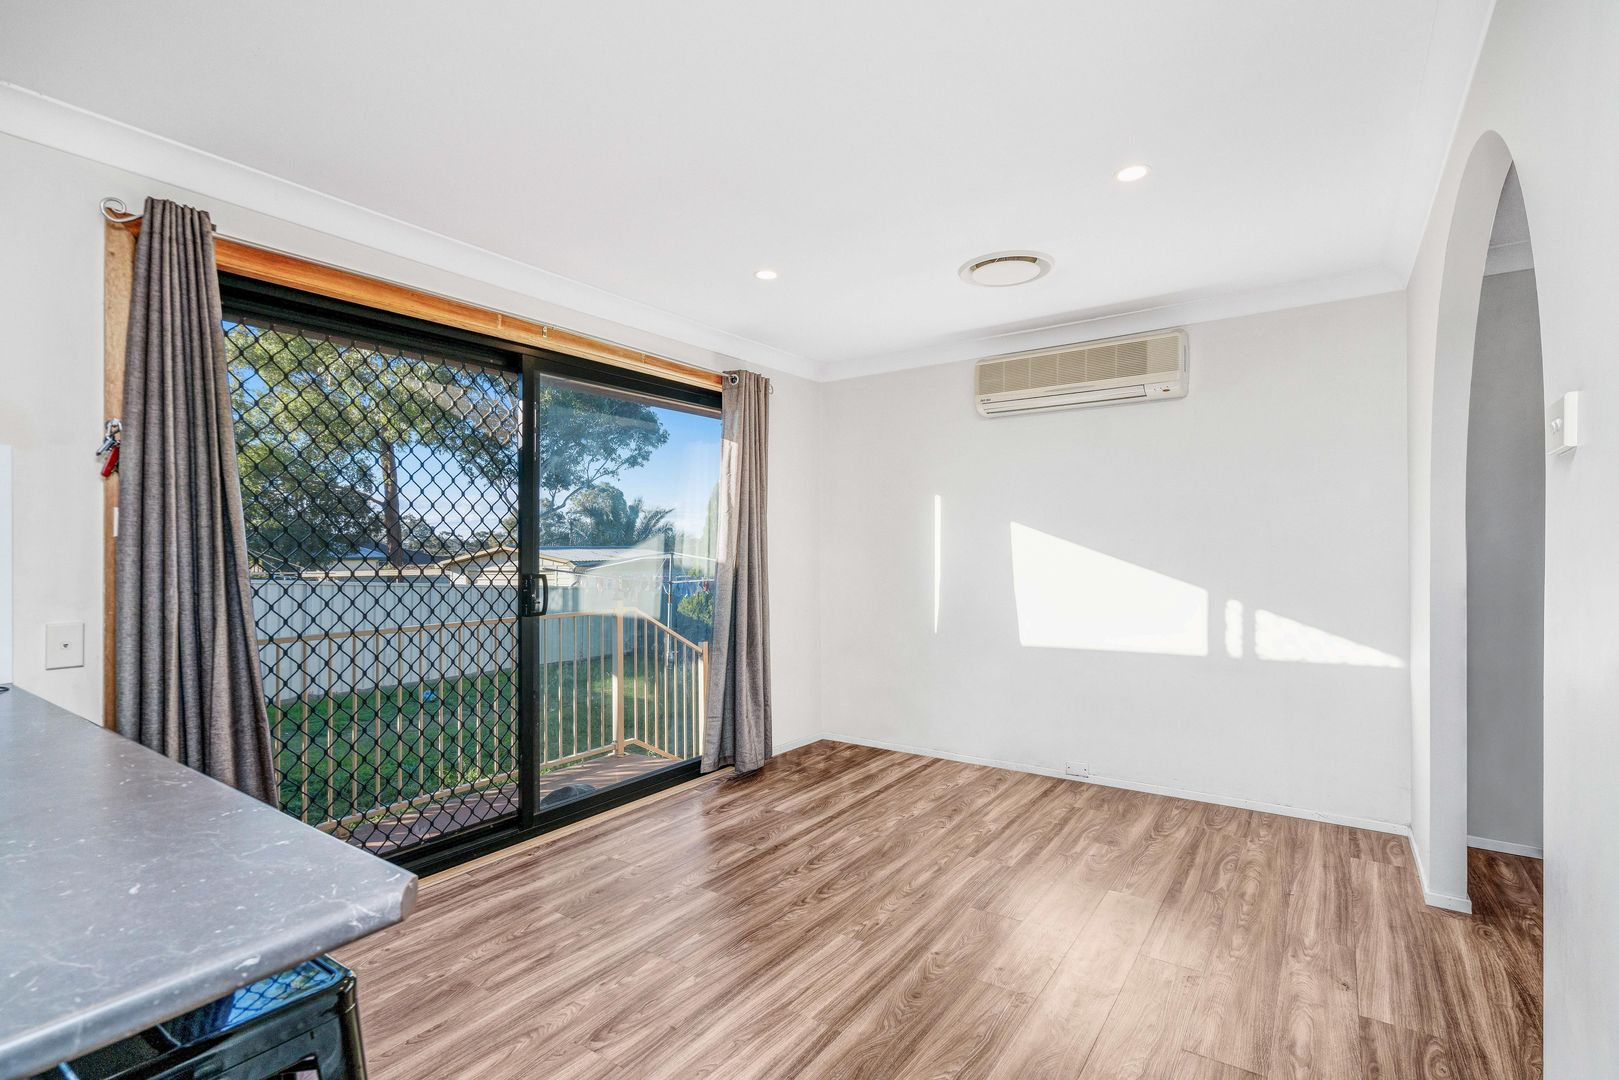 57 Doncaster Ave, Narellan NSW 2567, Image 2